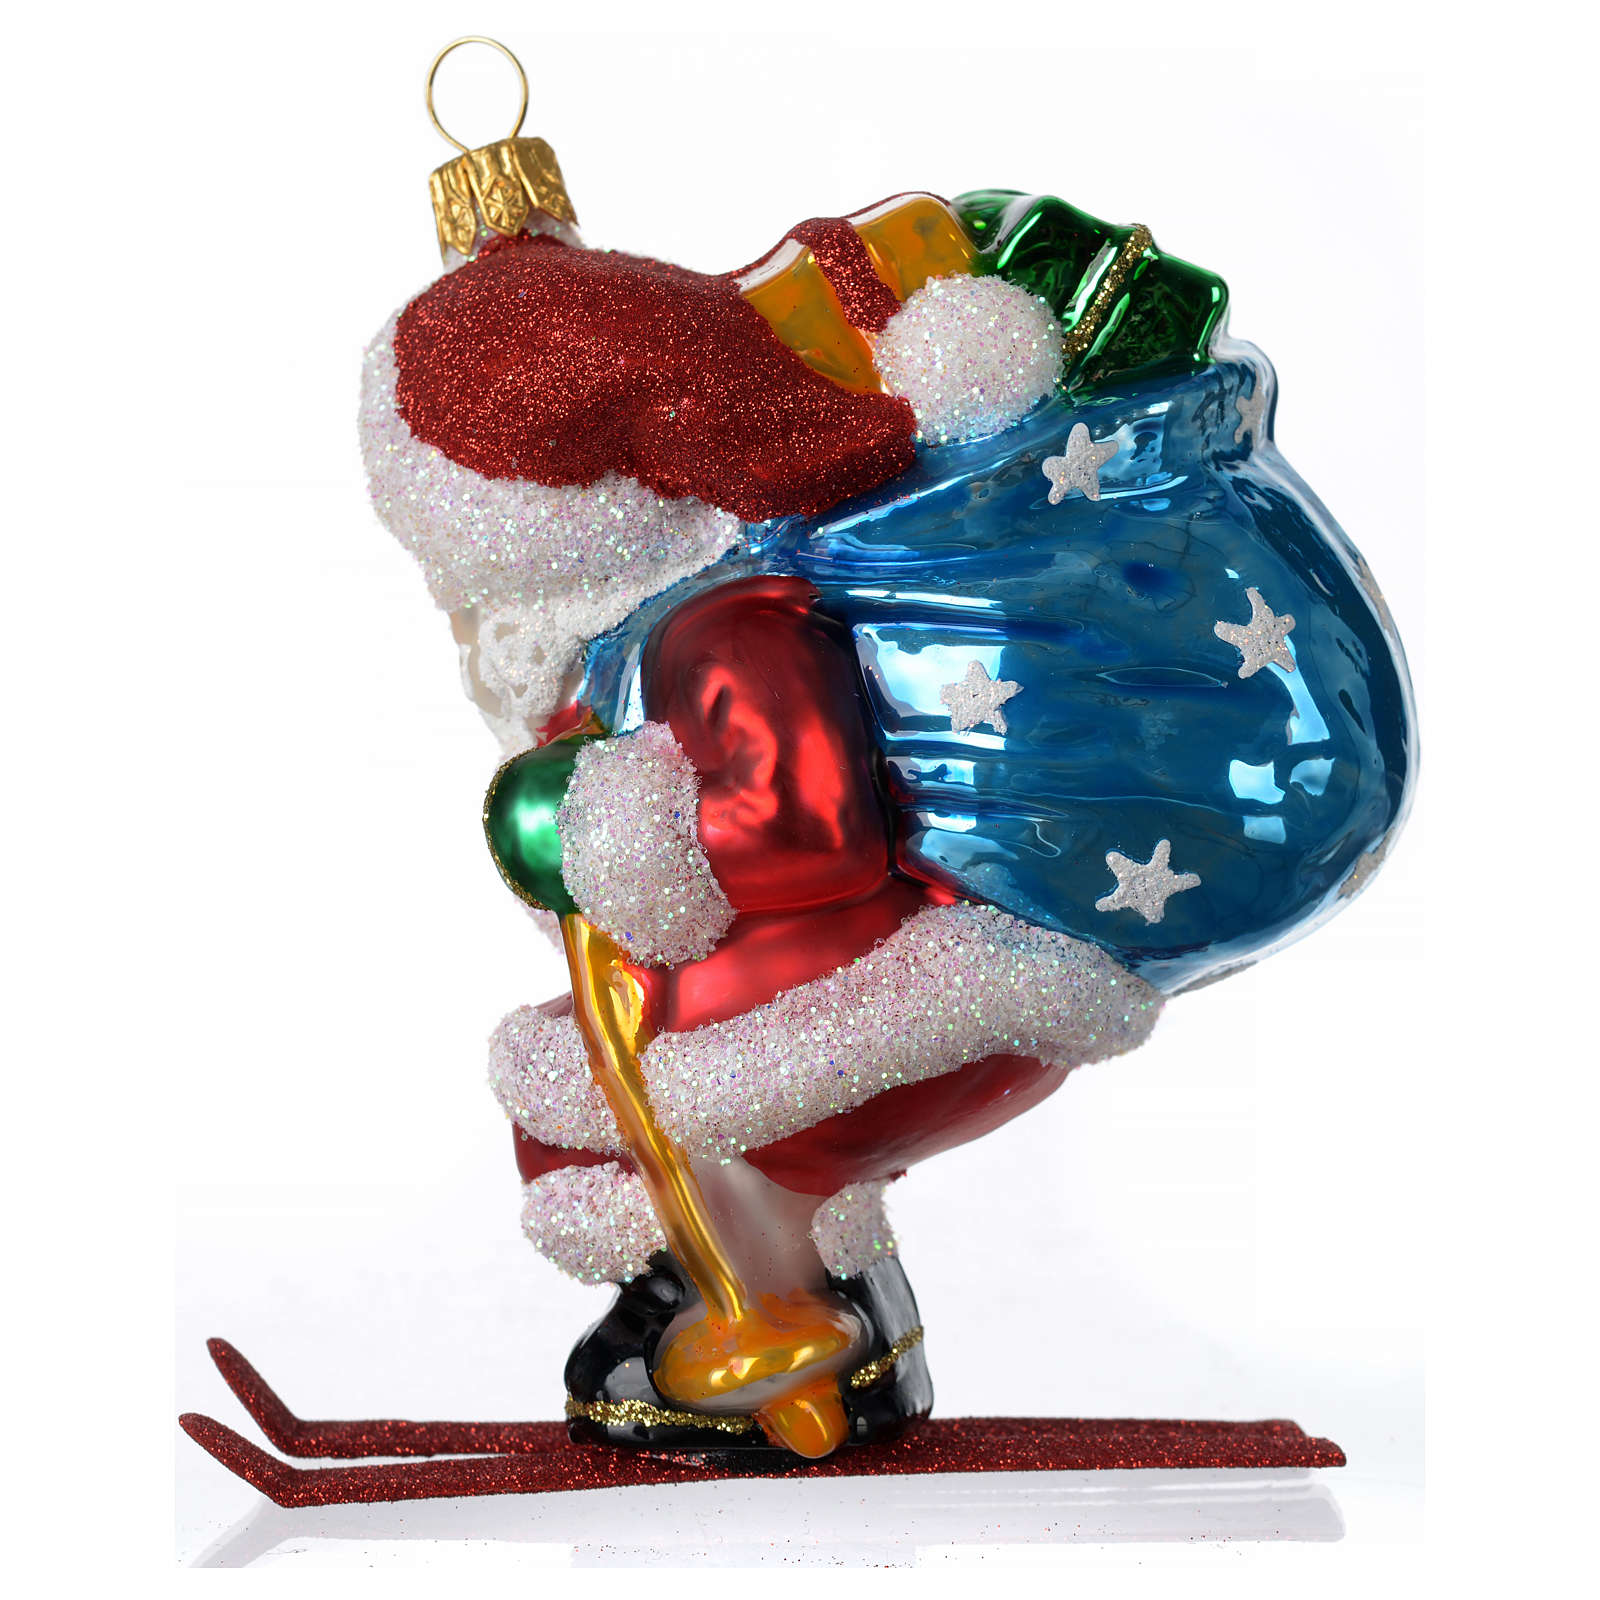 Blown glass Christmas ornament, Santa Claus on skis 4